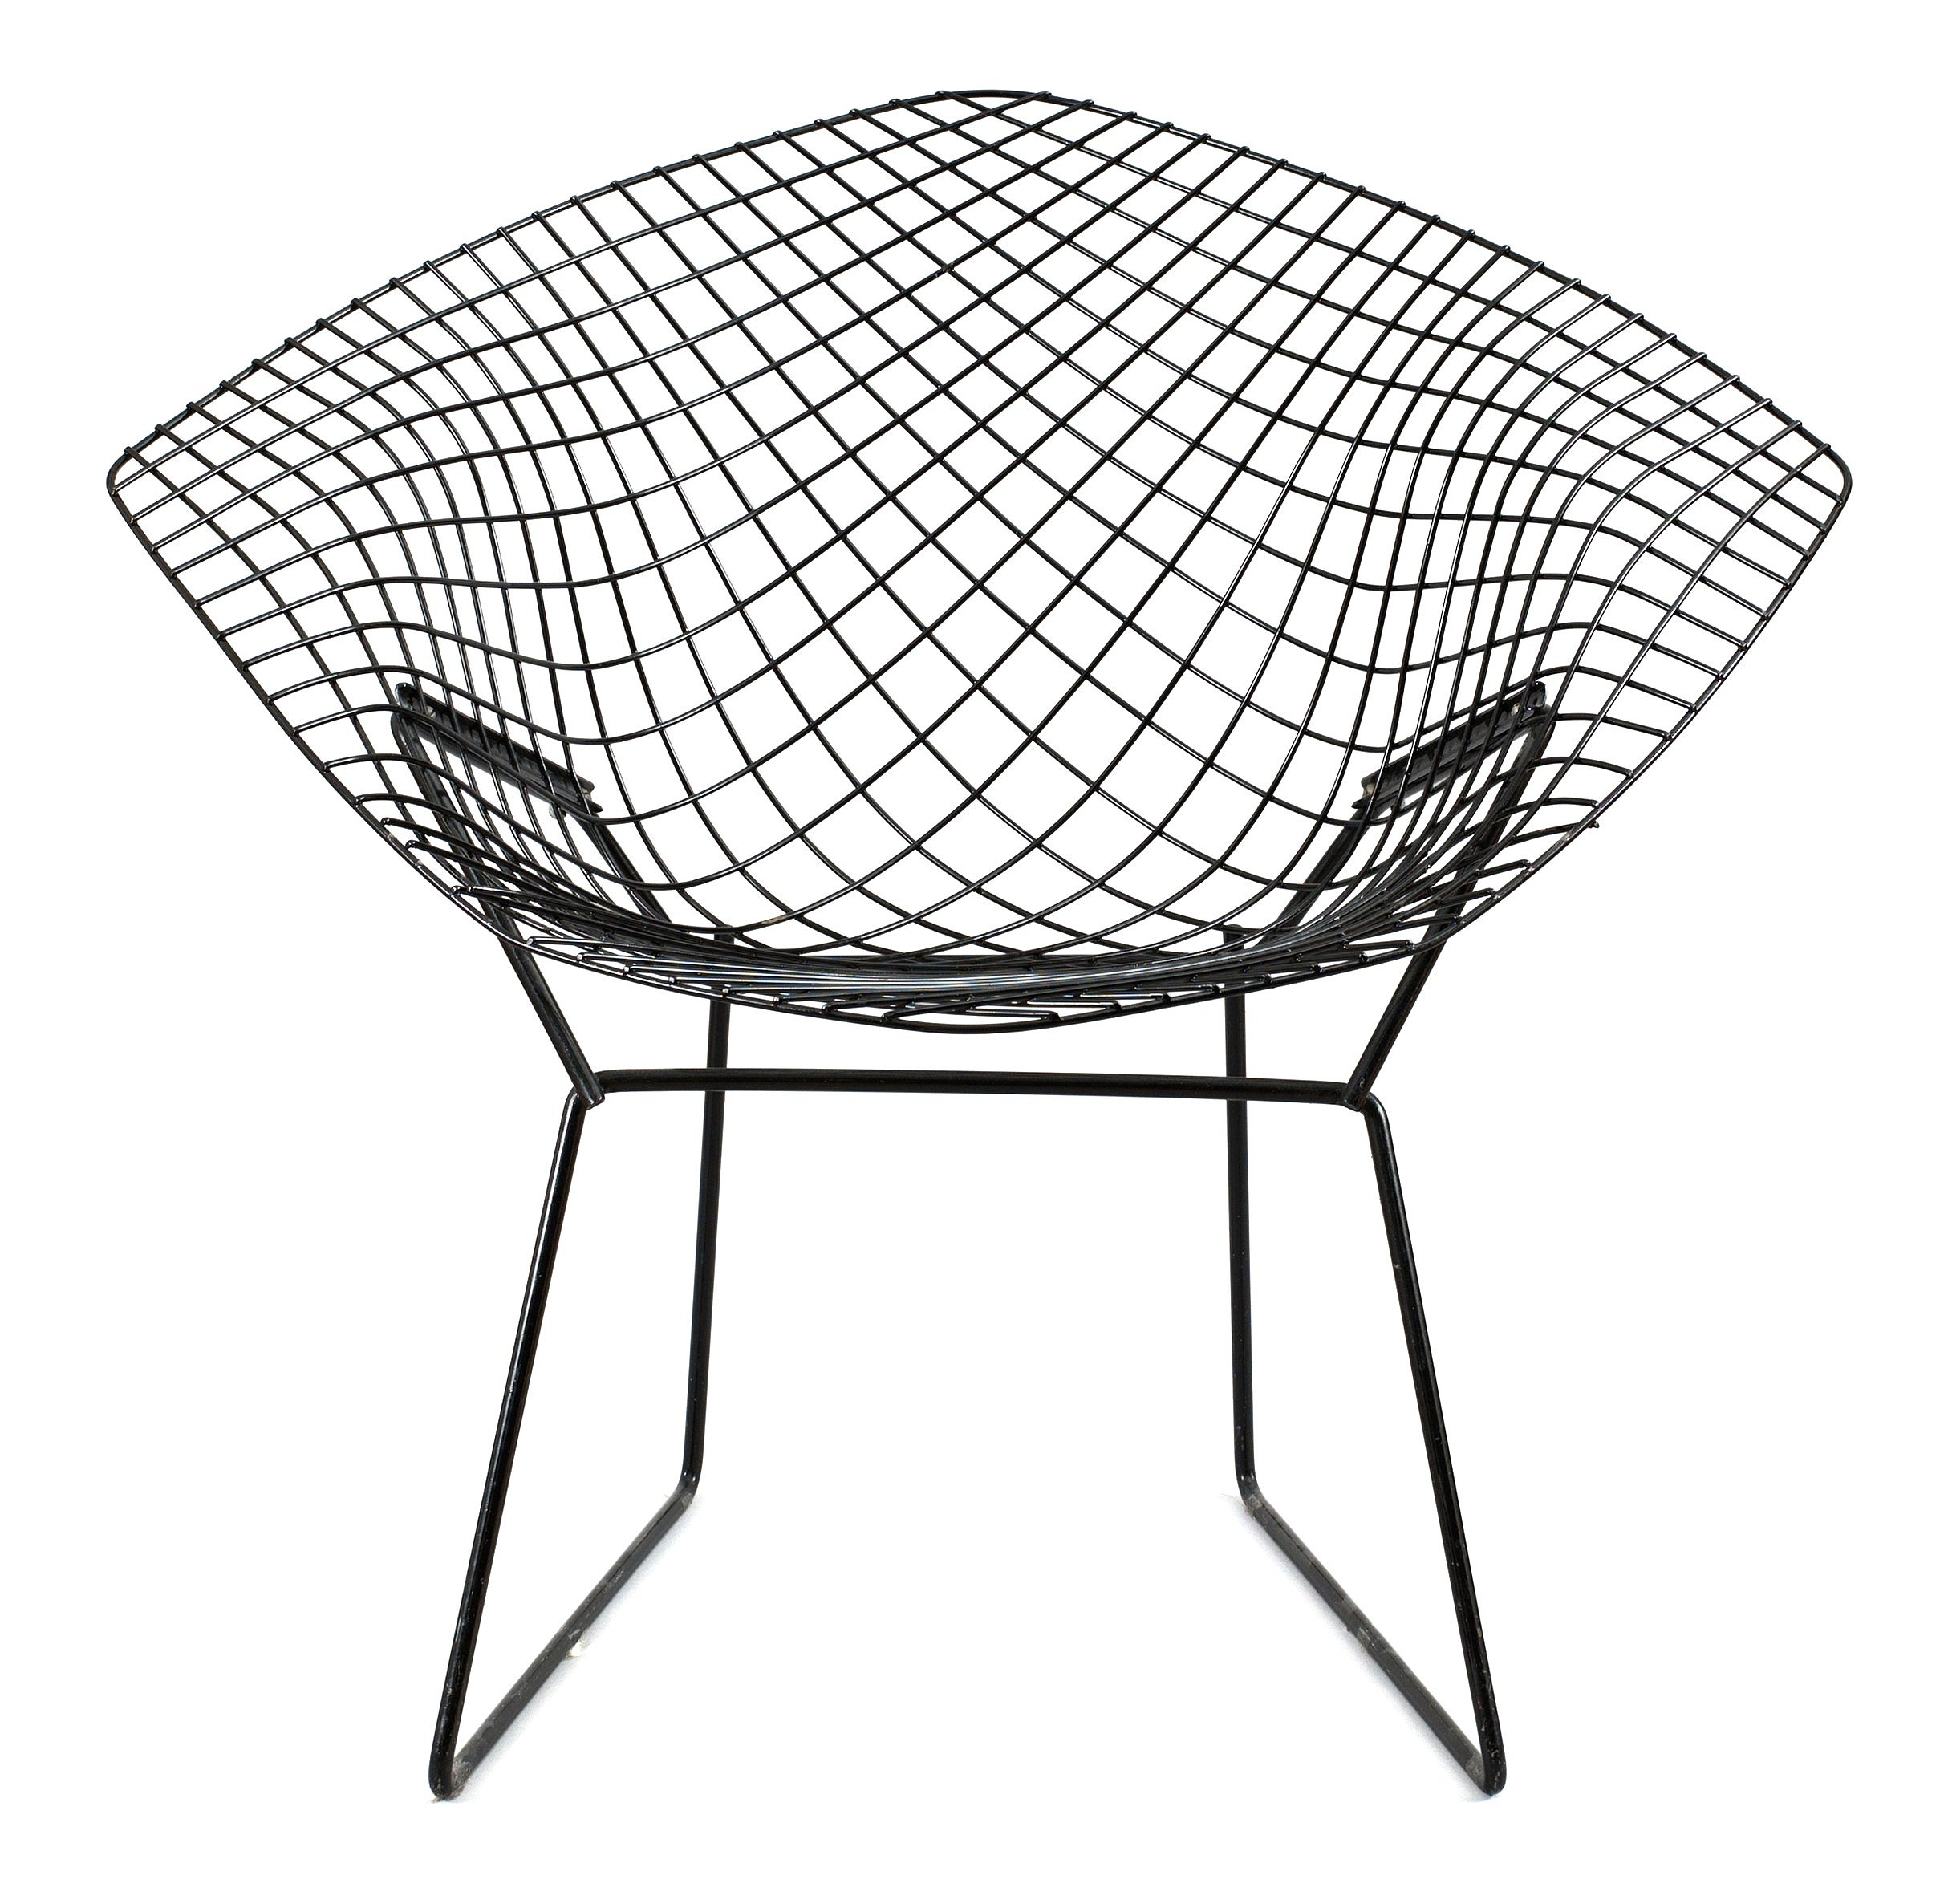 Harry Bertoia Chair A Harry Bertoia Black Metal Quotdiamond Chair Quot Bukowskis